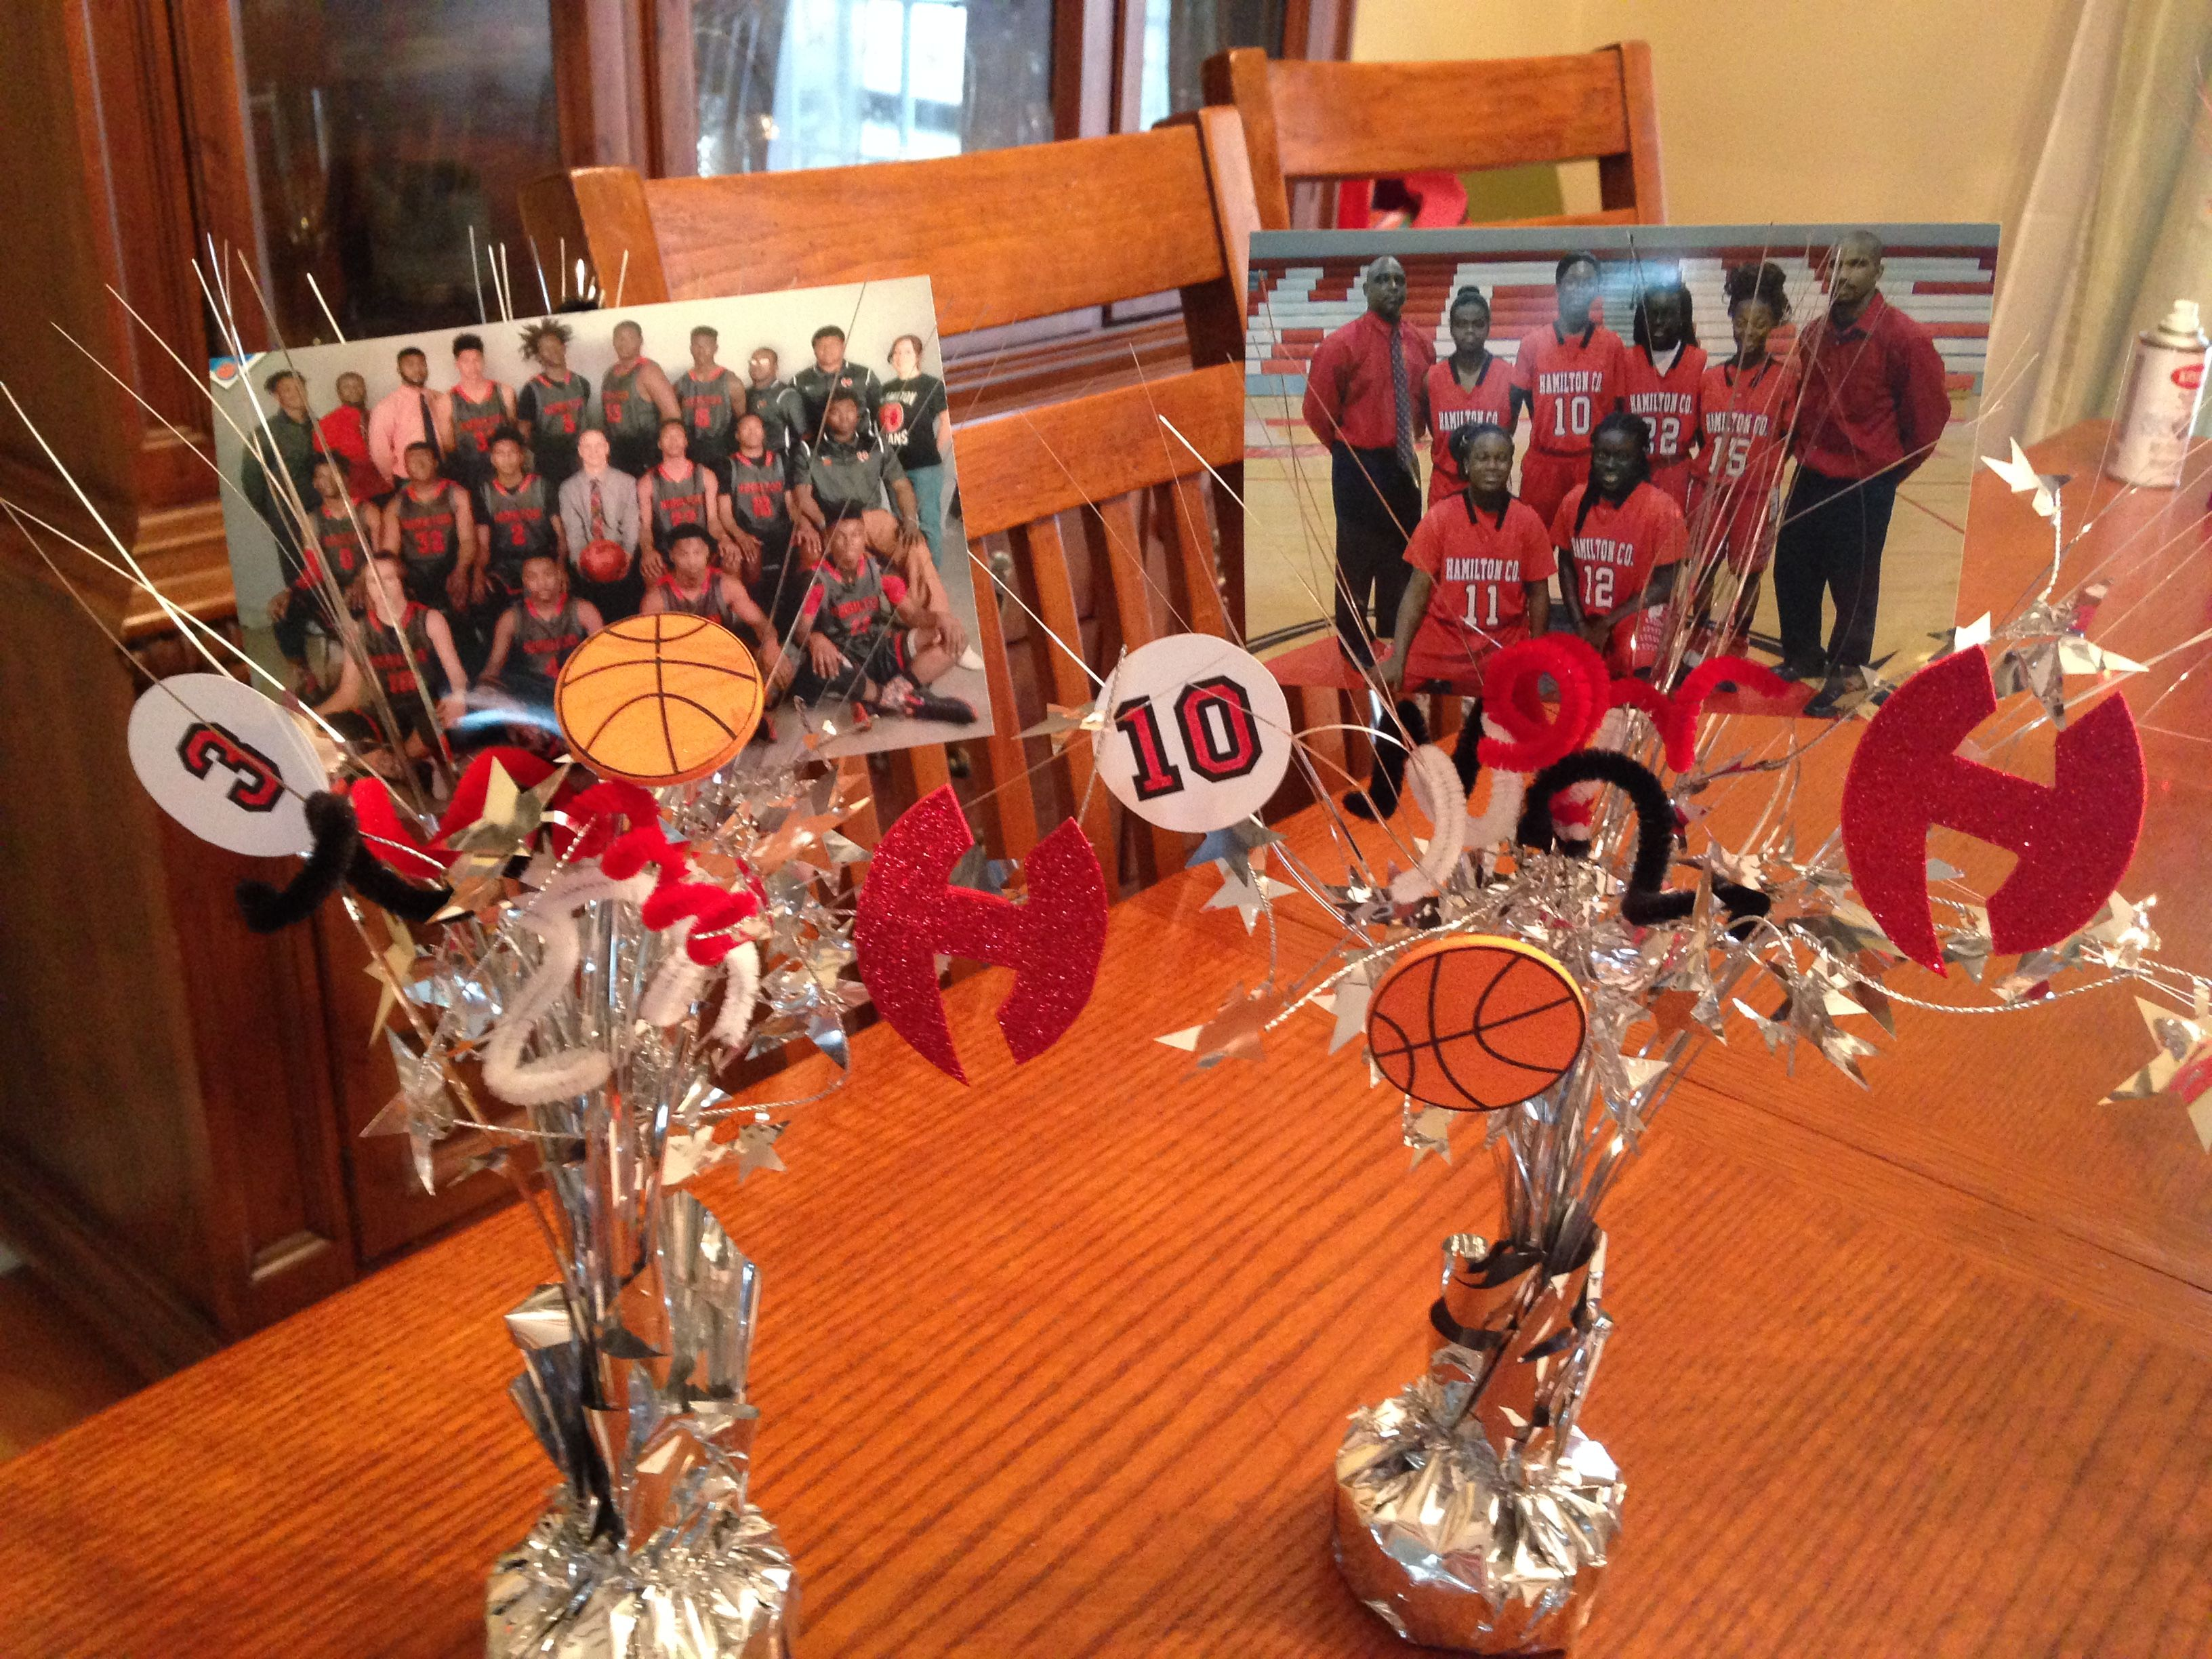 First House Gift Ideas Basketball Centerpieces For The Award Banquet Each Player